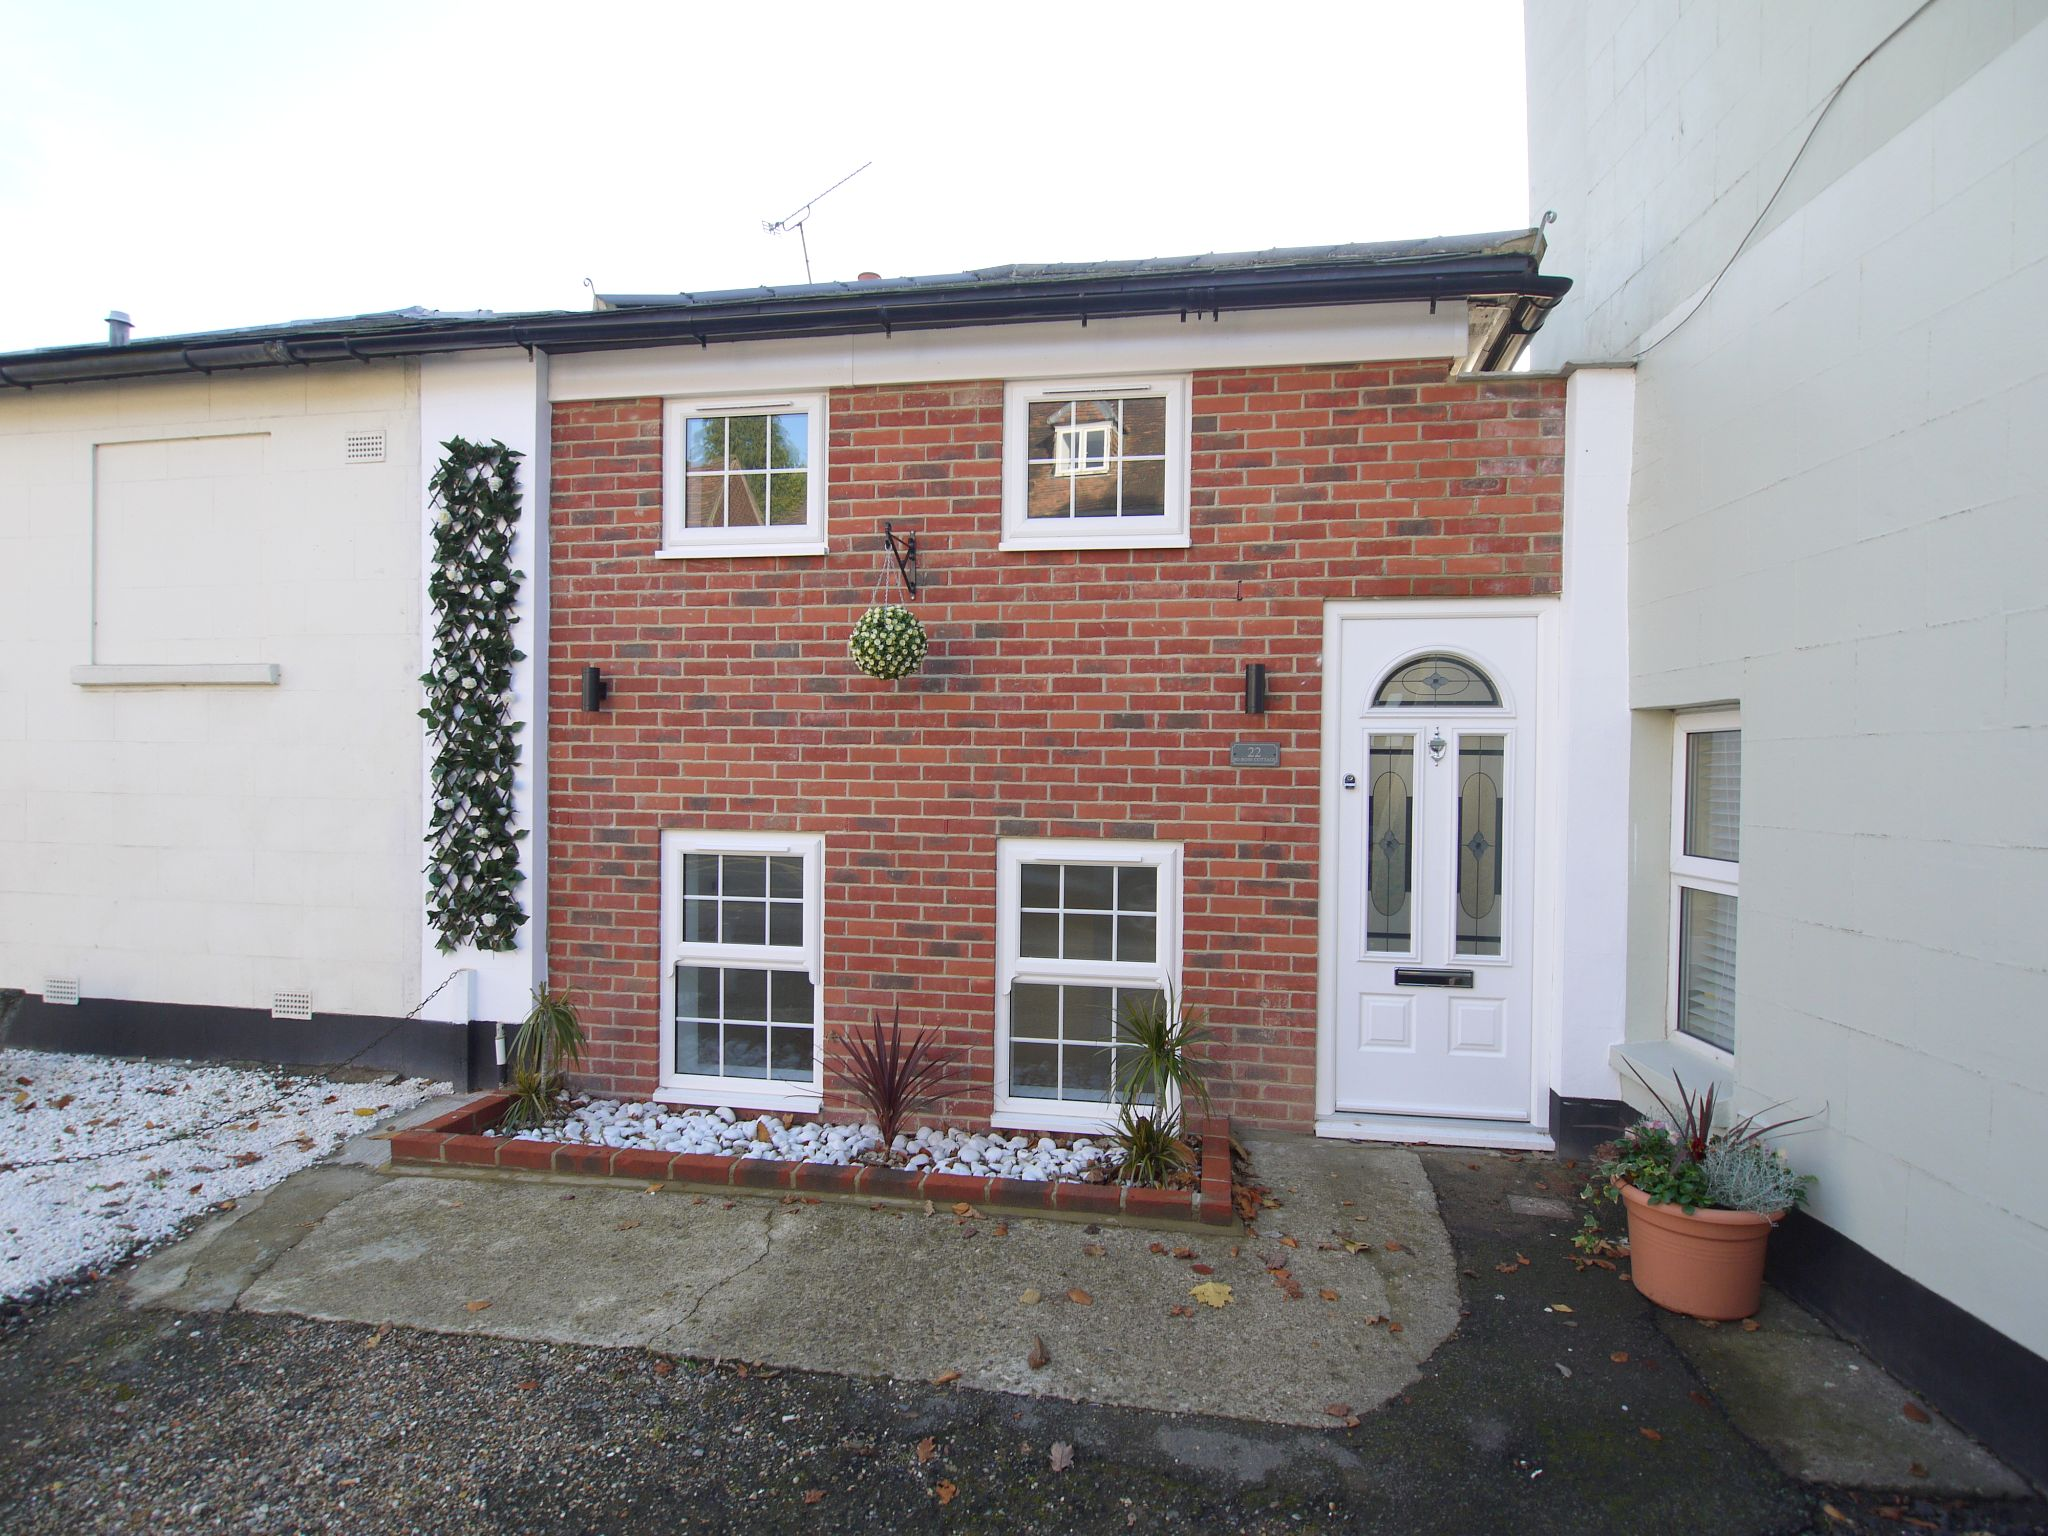 1 bedroom mid terraced house For Sale in Sevenoaks - Photograph 1